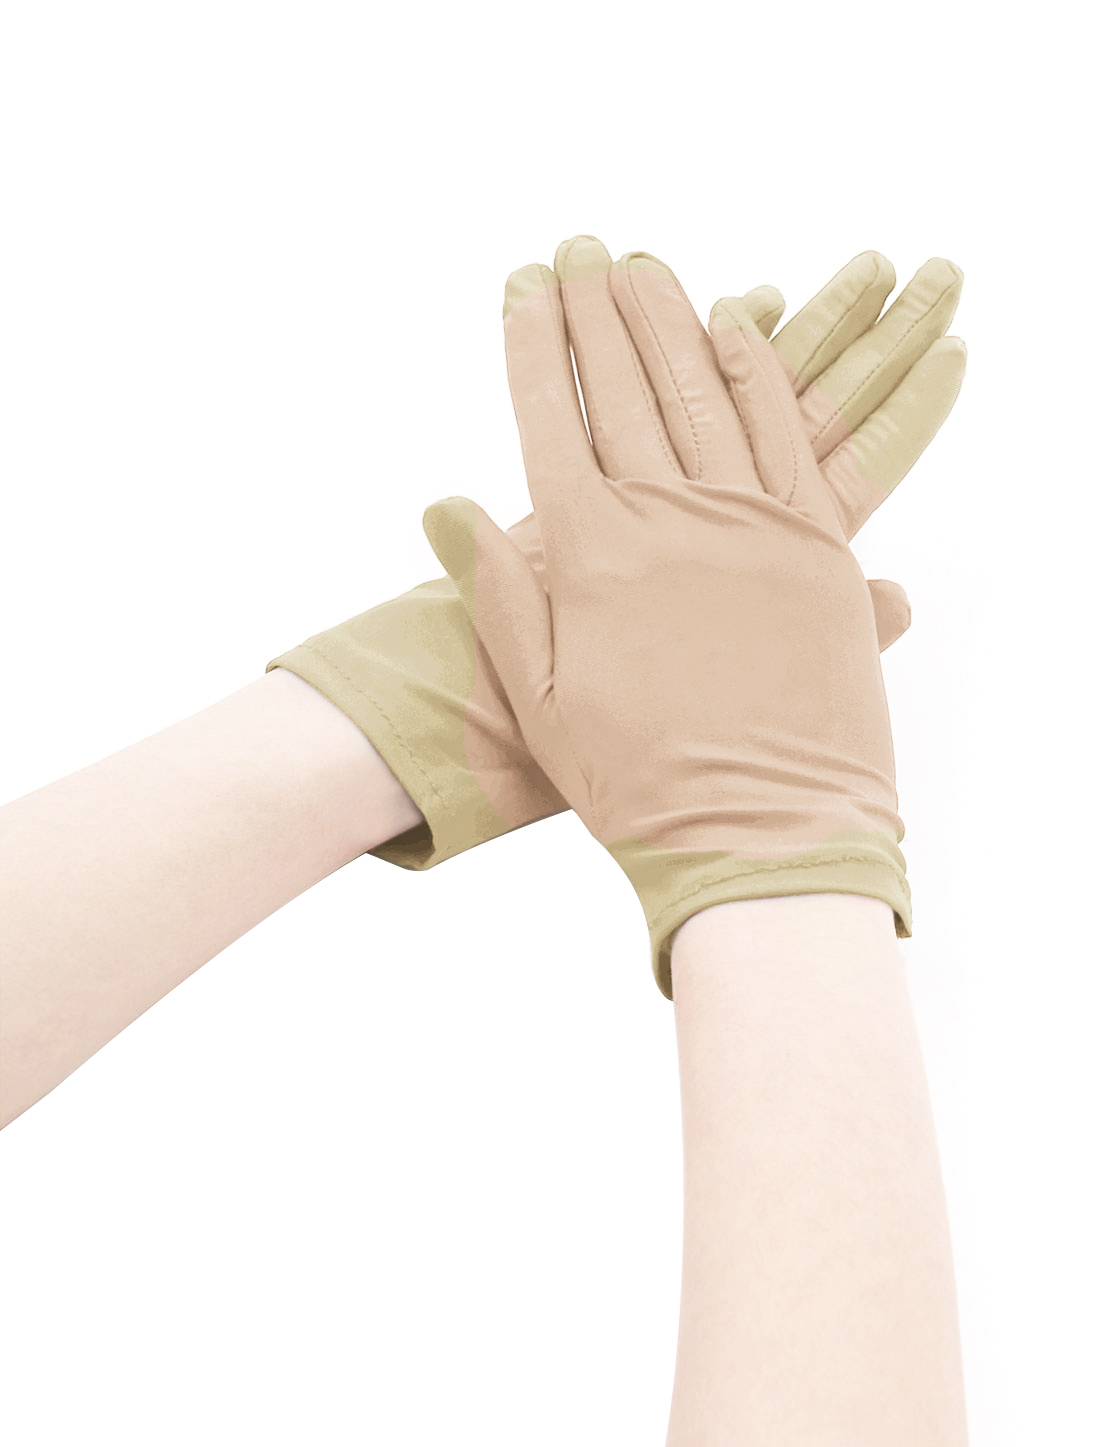 Women Wrist Length Matte Full Finger Stretchy Gloves 5 Pairs Beige